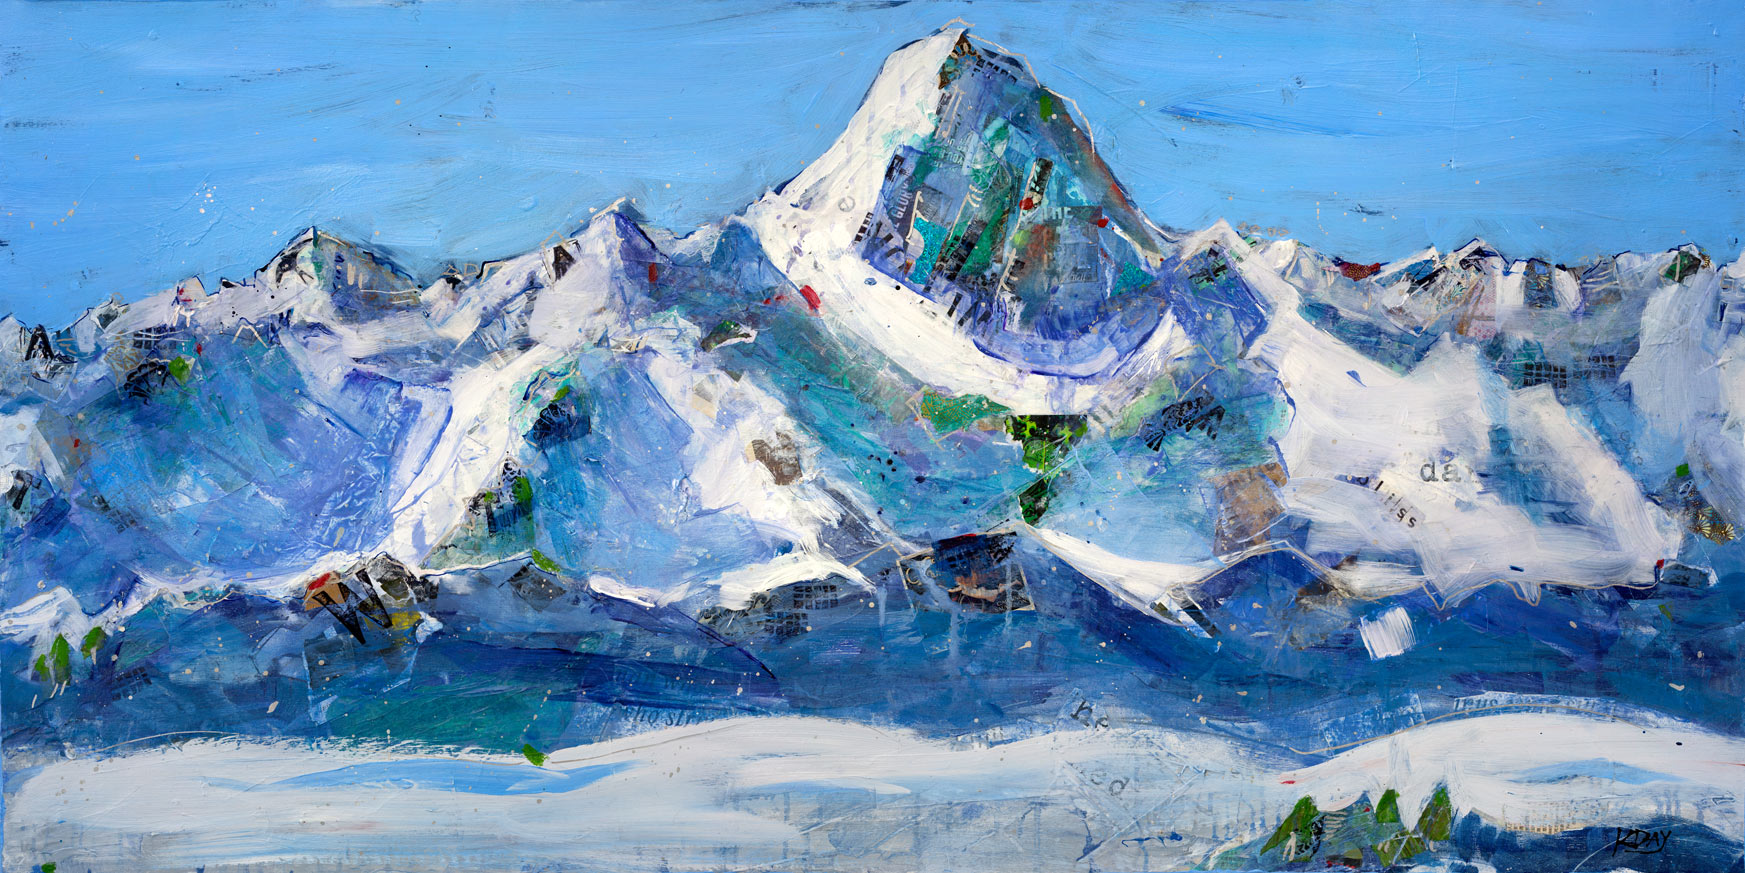 Wilson Peak, Telluride, Colorado, mixed media painting on canvas ©Kellie Day